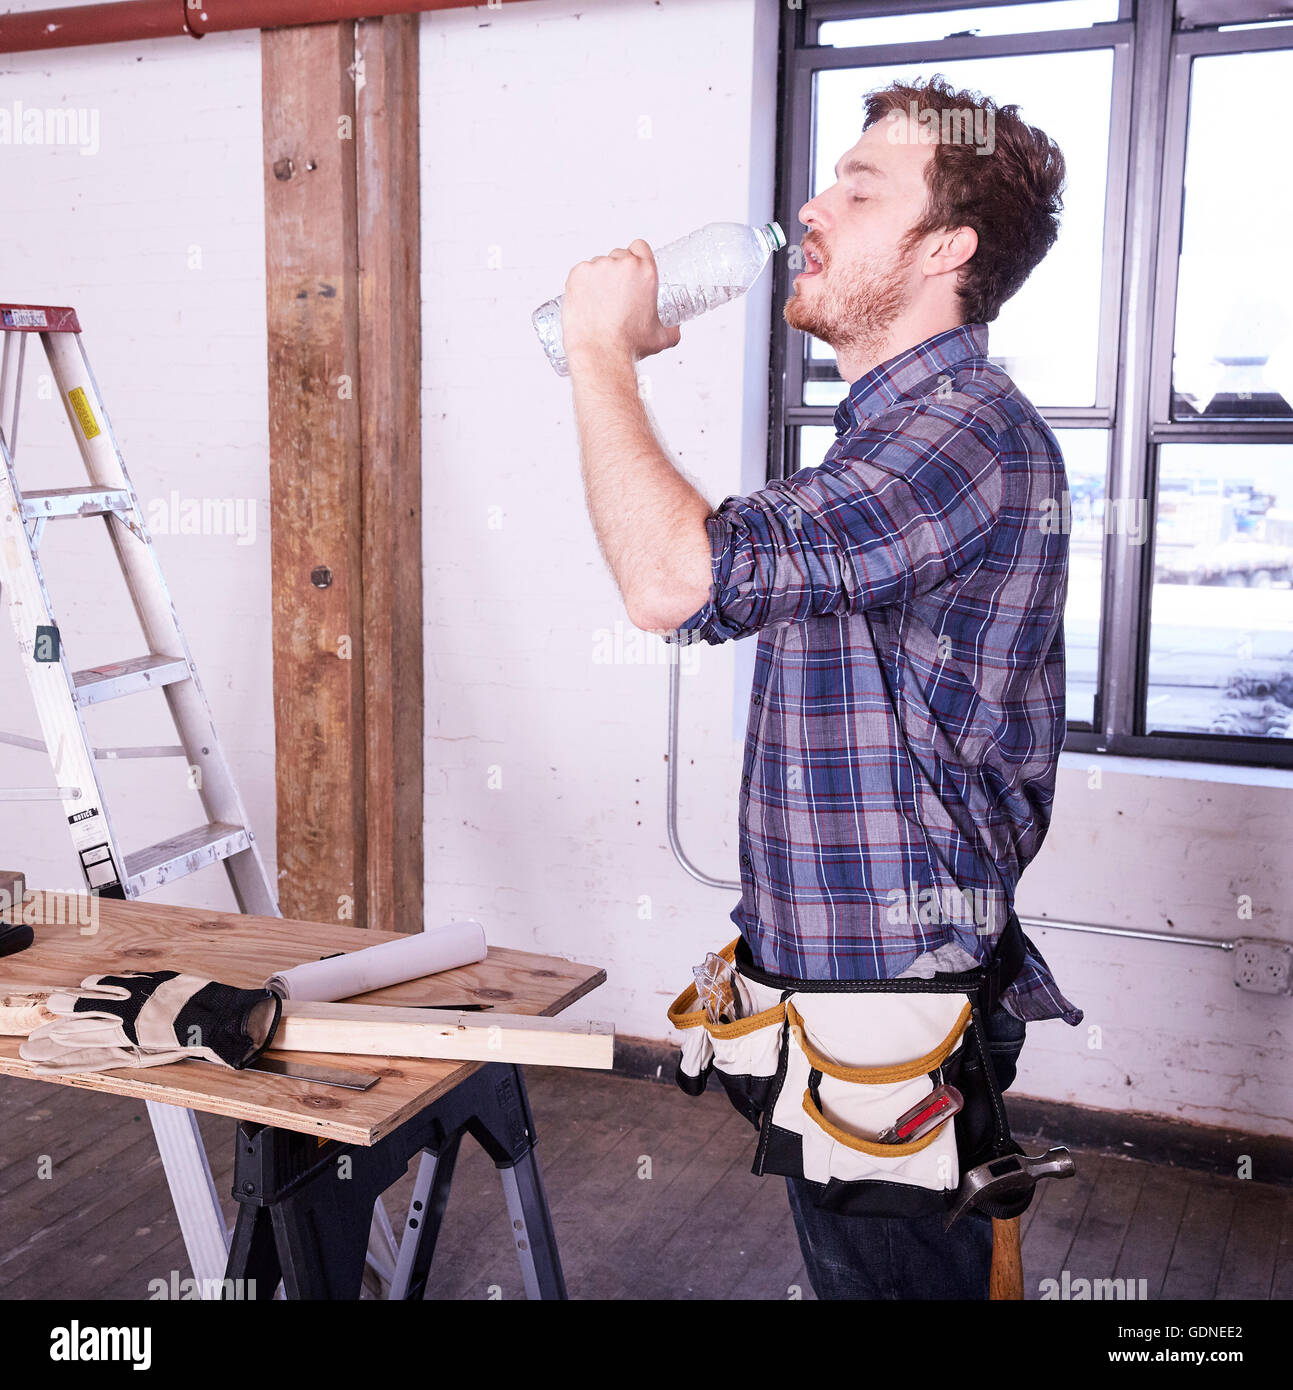 Carpenter in workshop drinking from water bottle - Stock Image